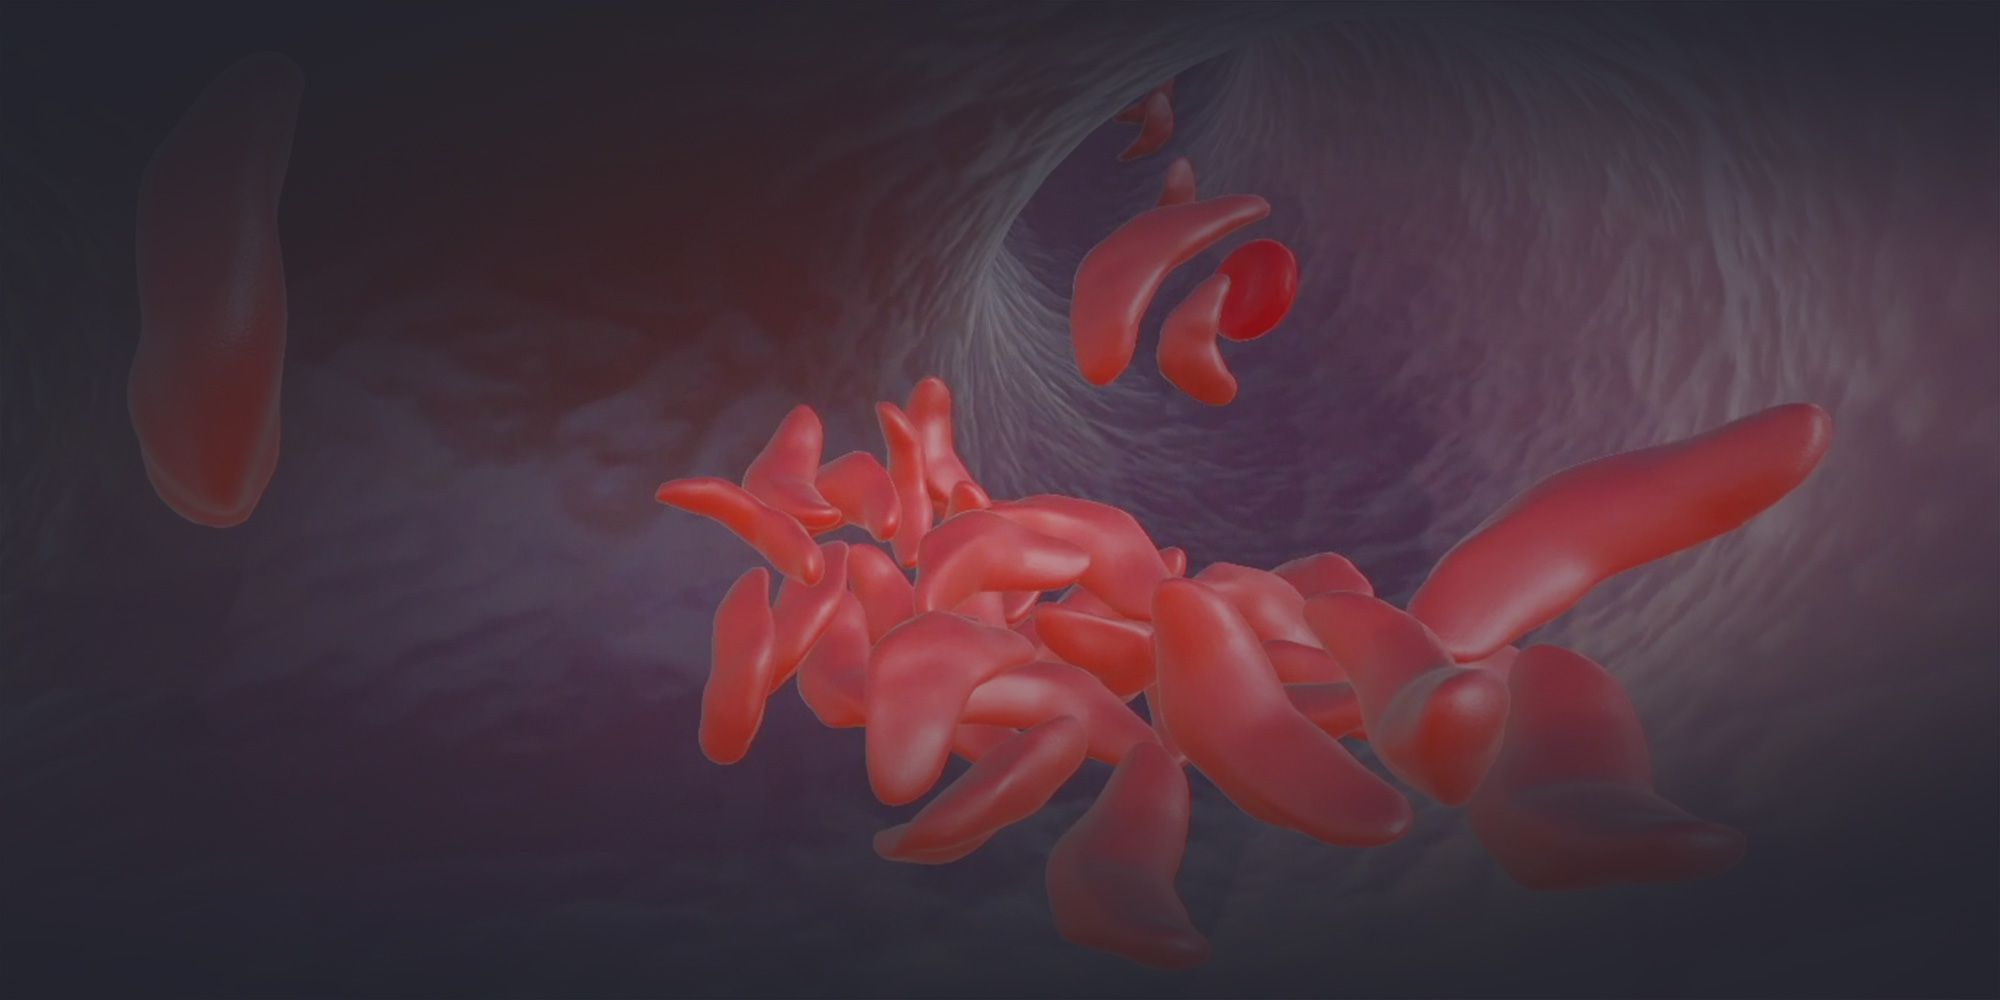 Virtual reality environment in which sickled cells are getting caught in a narrow blood vessel